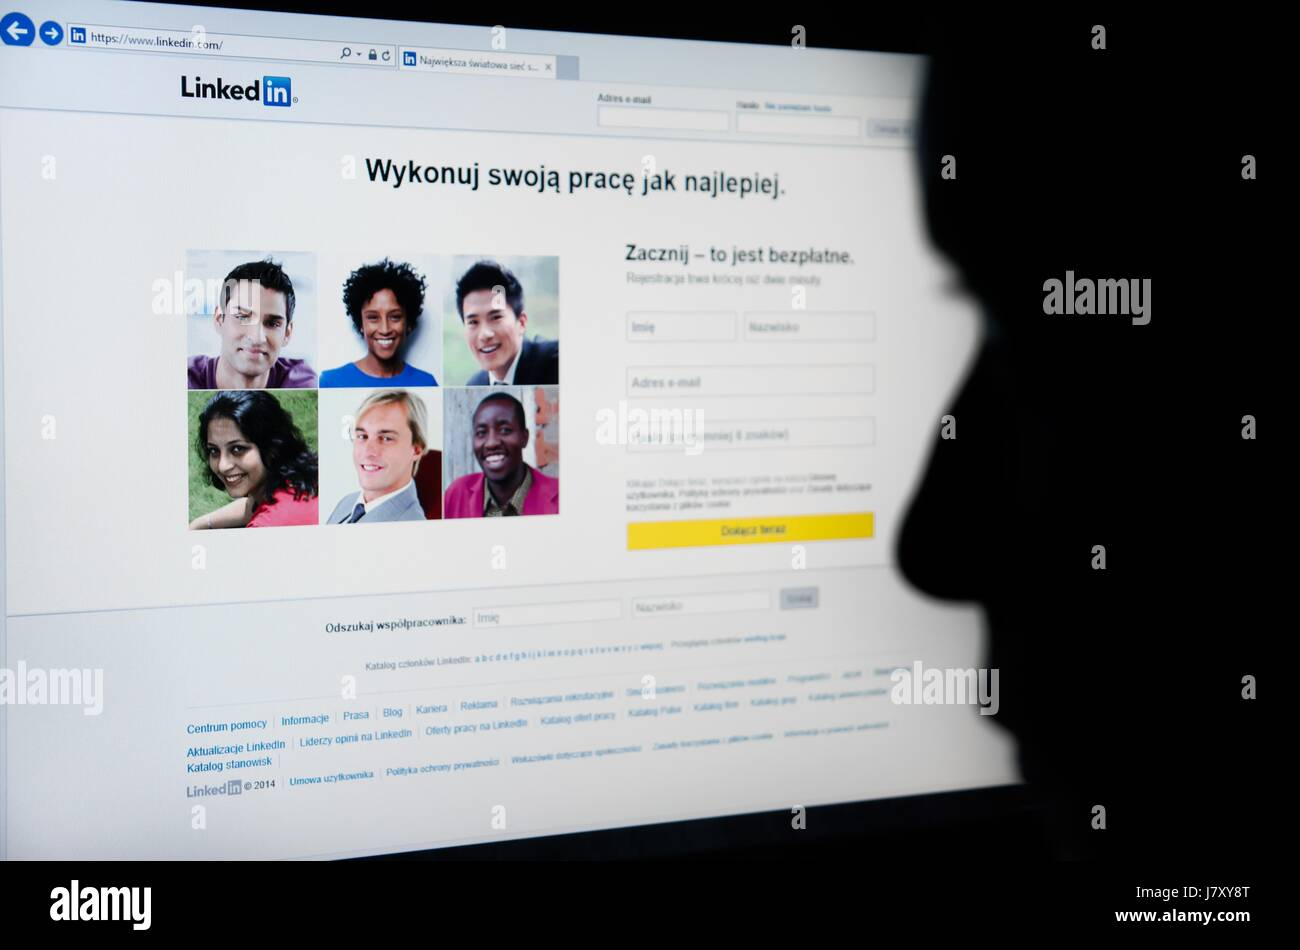 Face looking at Linkedin.com homepage on the screen - business-oriented social networking service - Stock Image